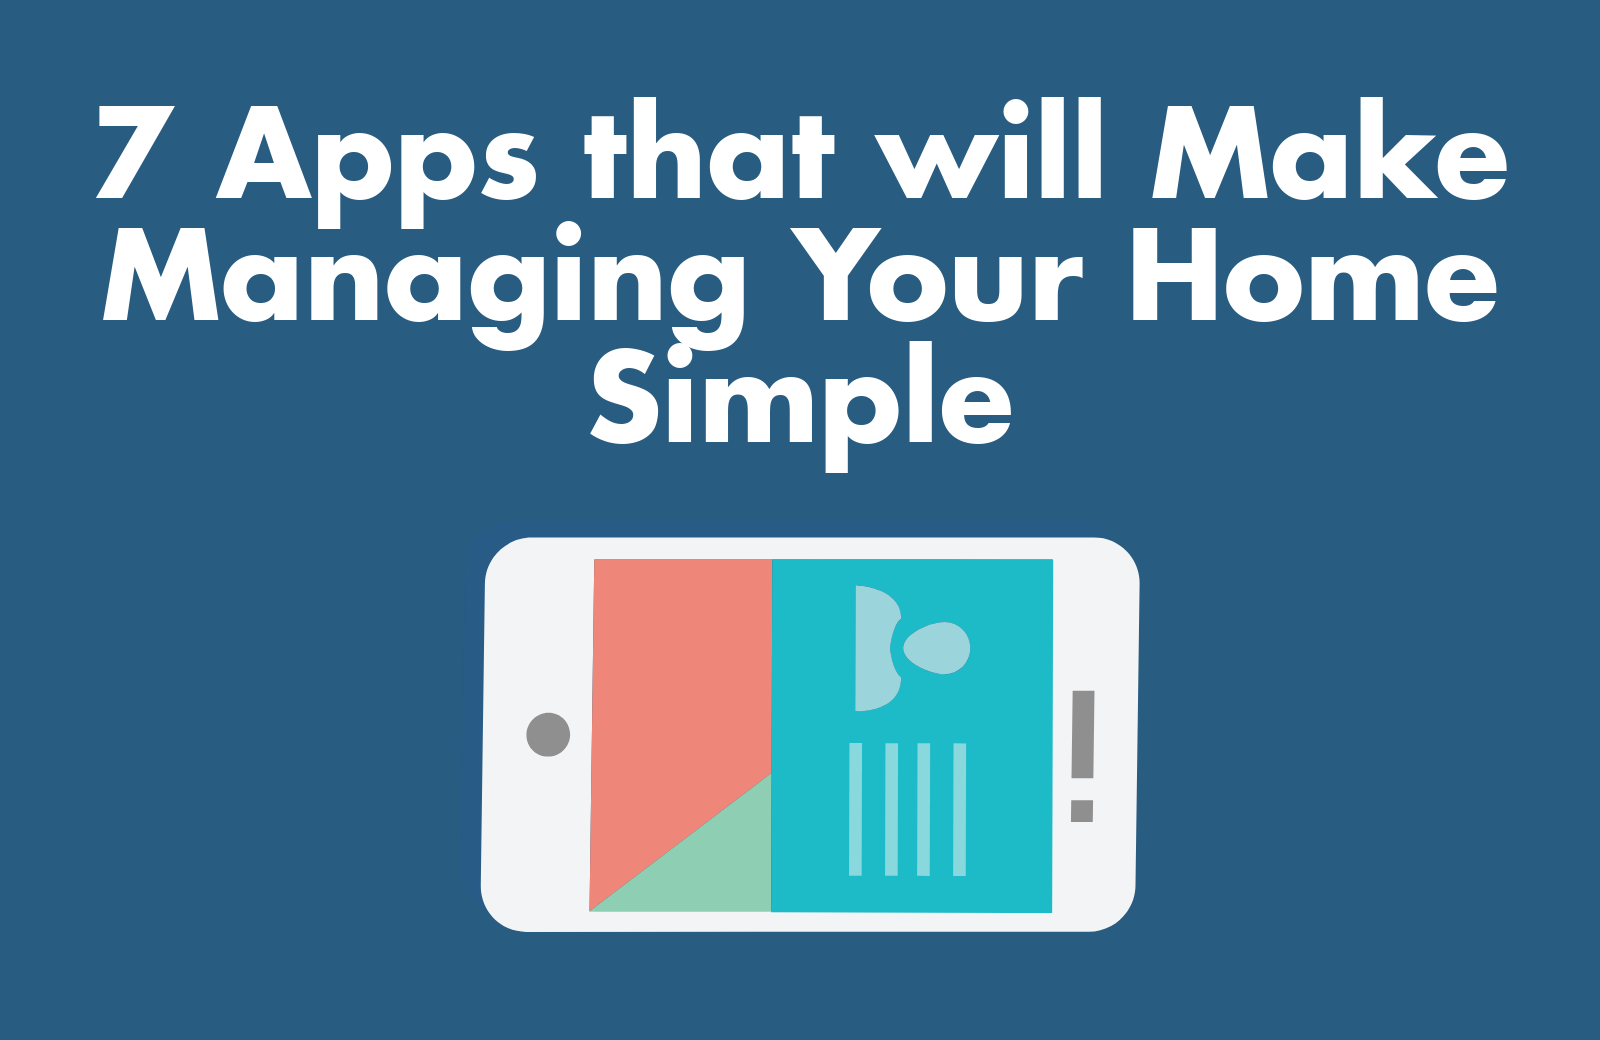 7 apps that will make managing your home simple featured image